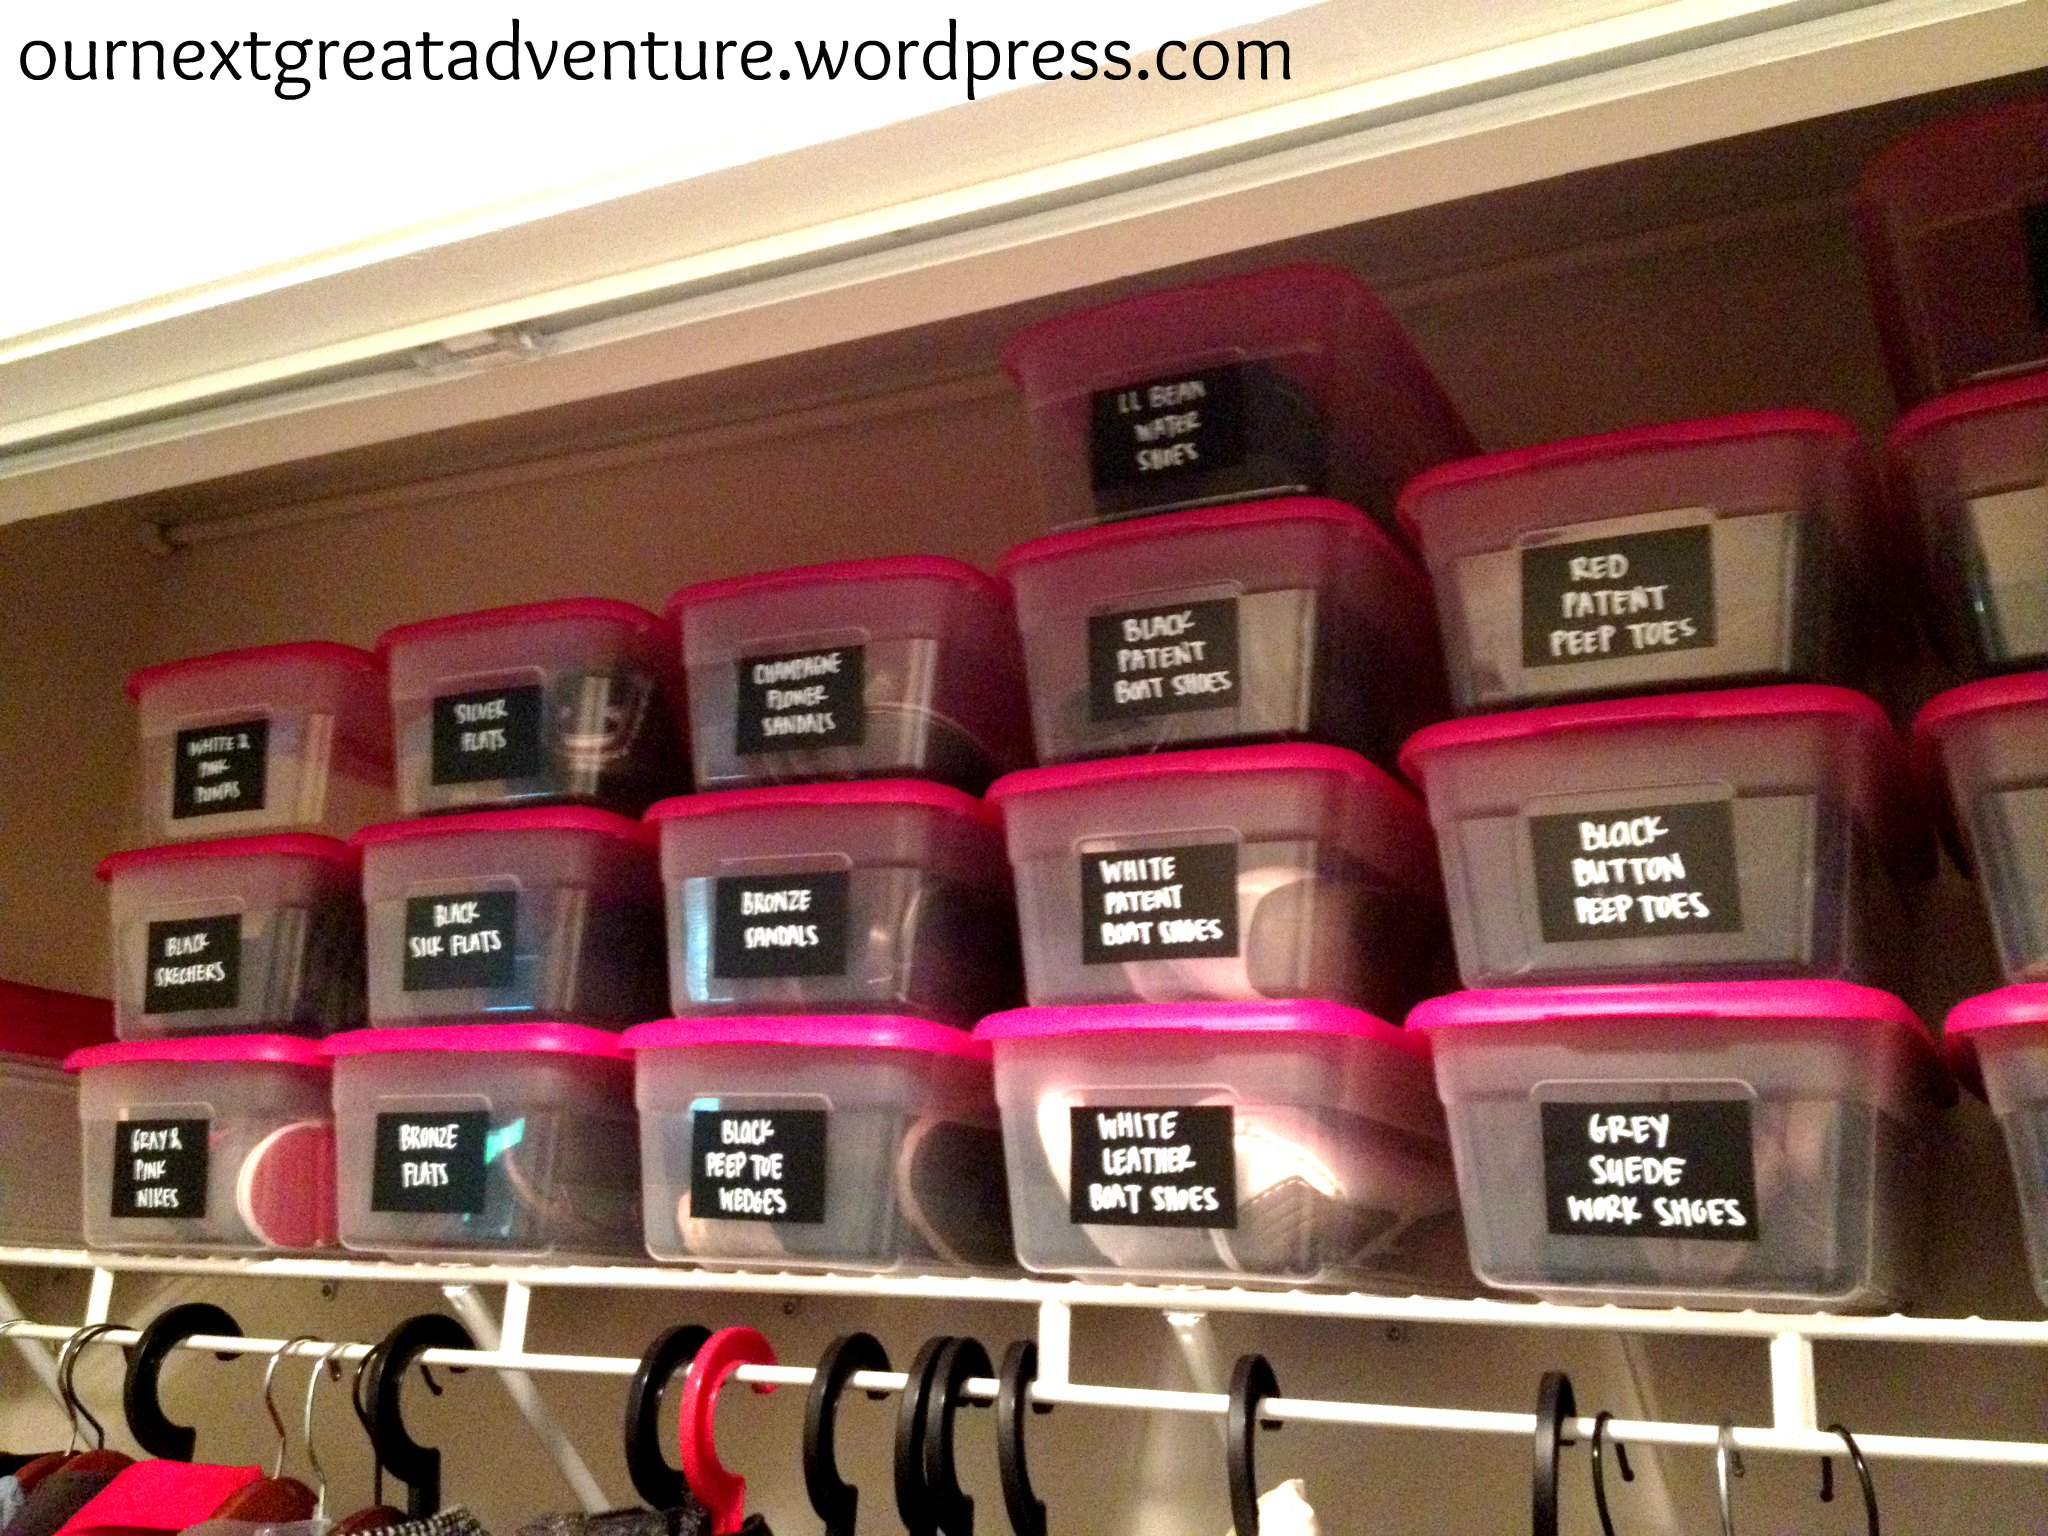 Marvelous Organizing Shoes In A Small Closet #25 - I With Shoes Closet Ideas